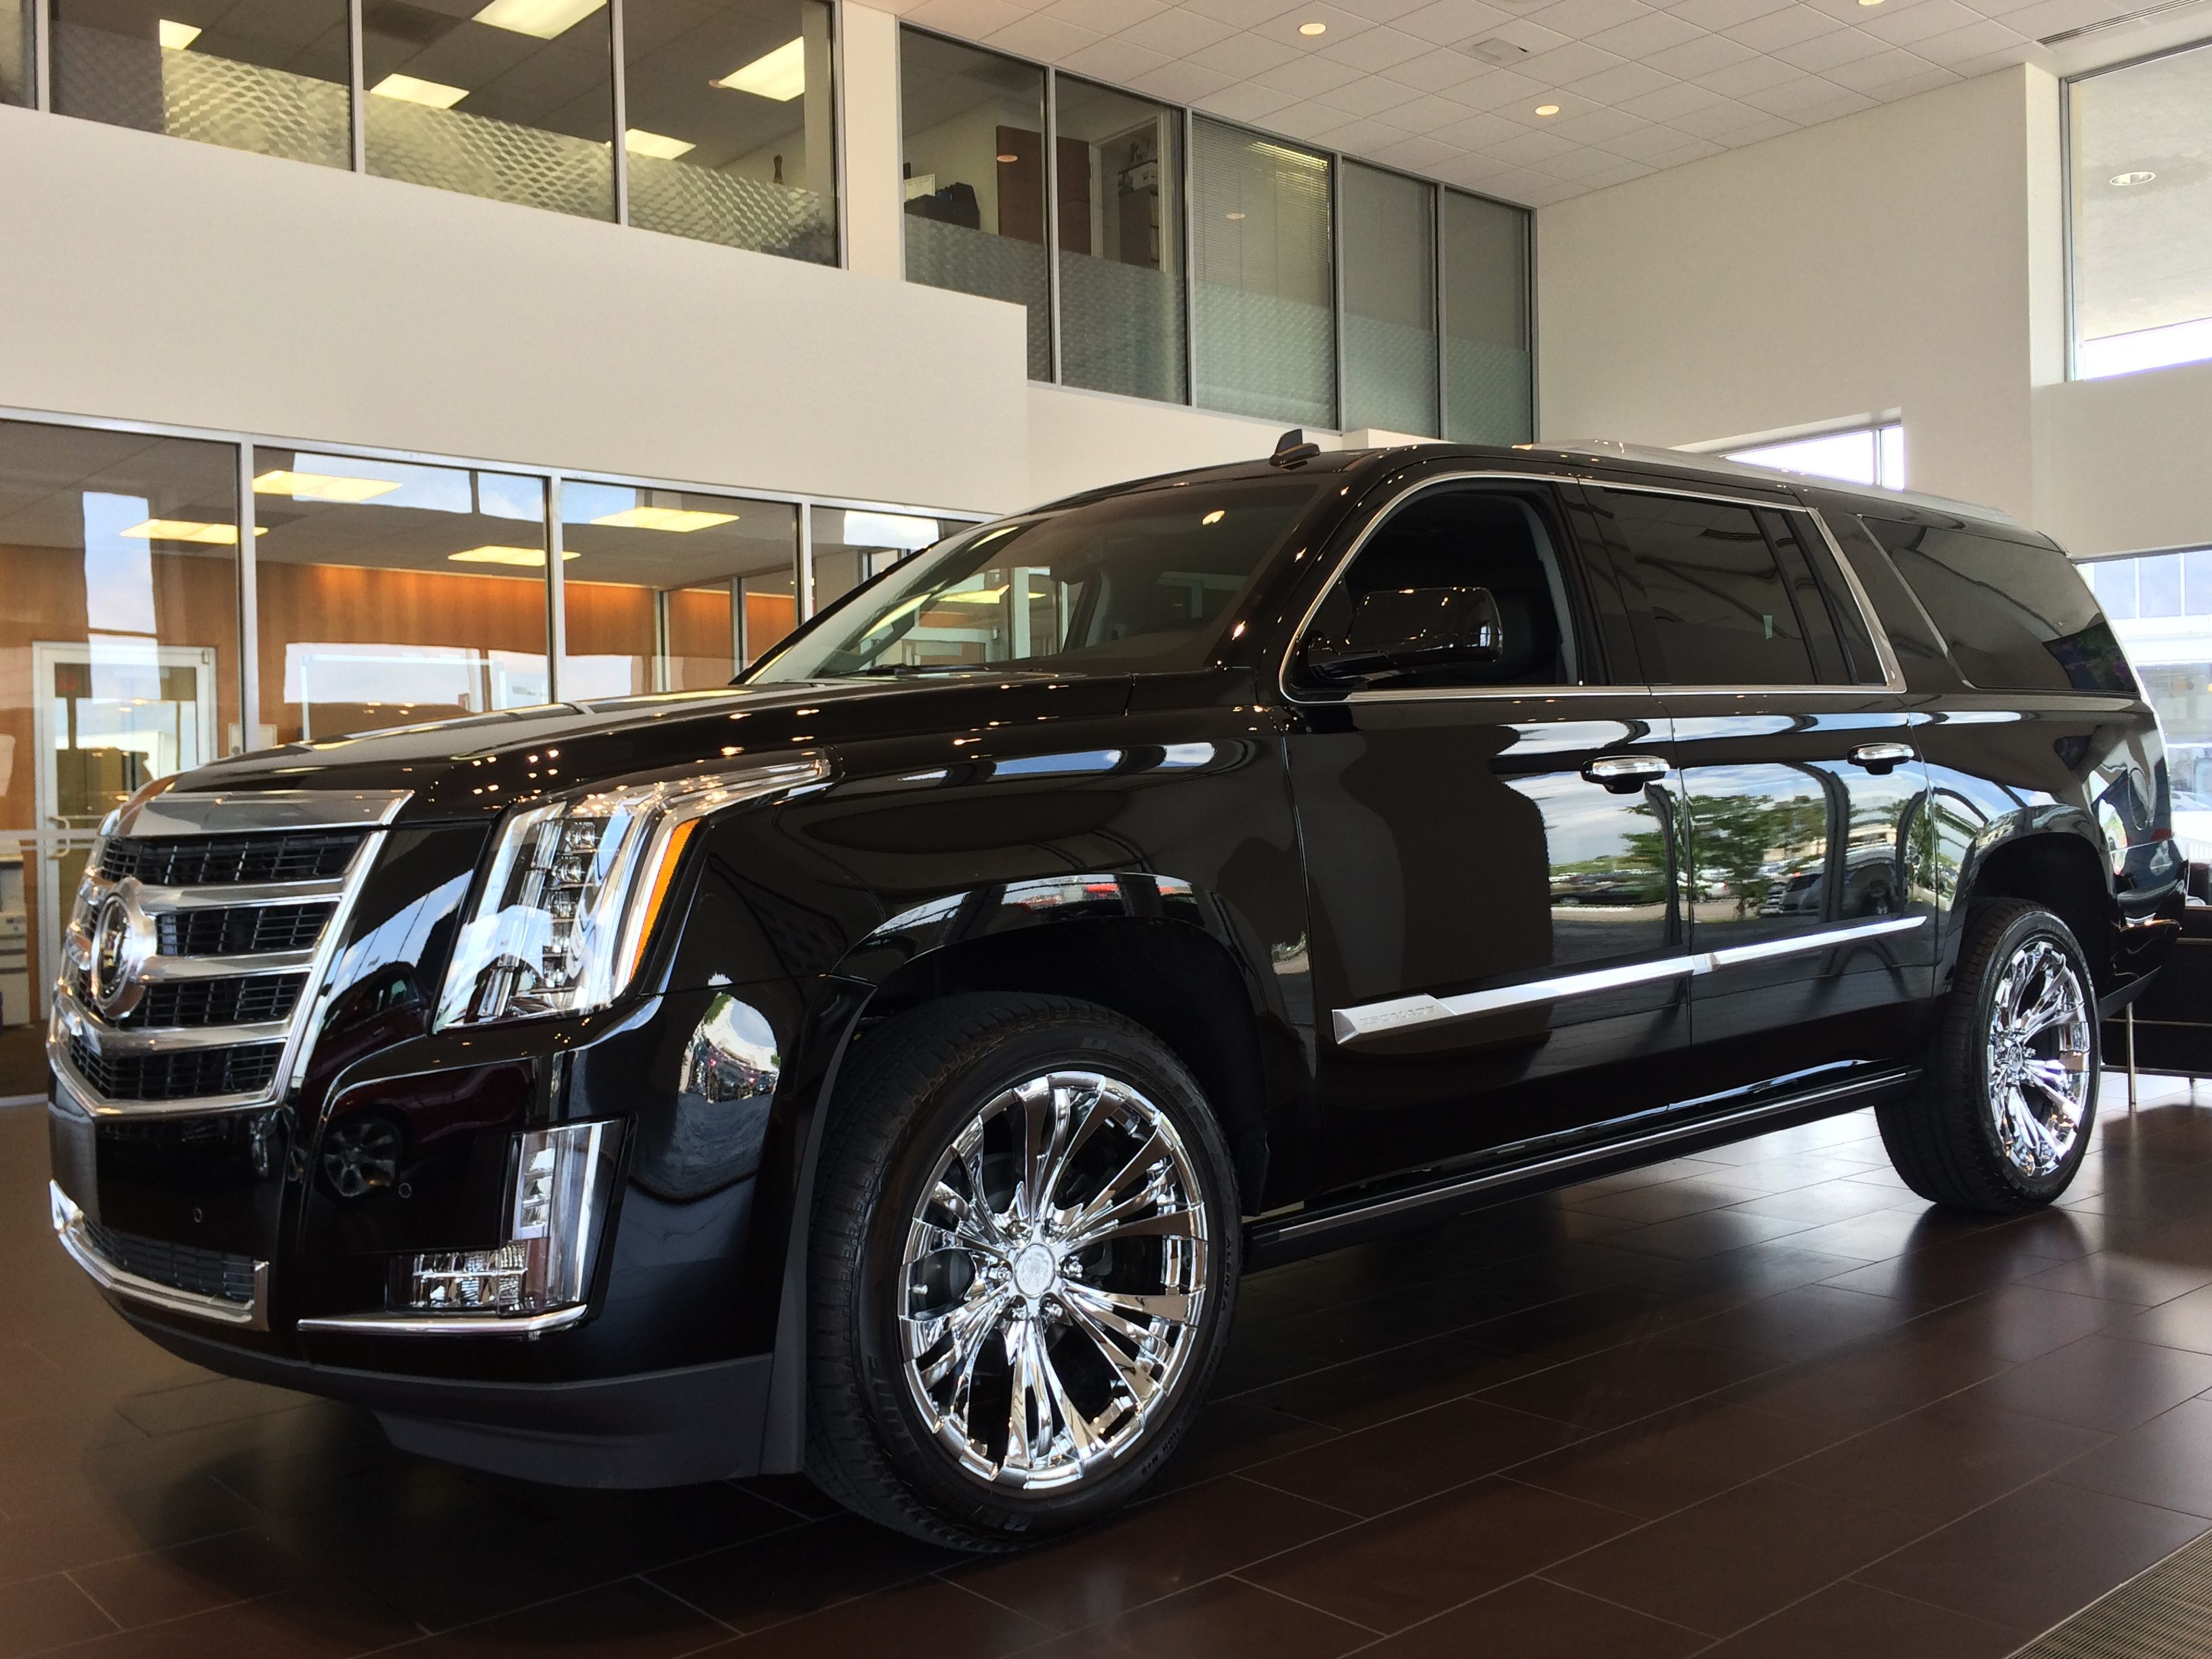 used mcdonald turbo mi cadillac com at gmc auto dealers in cars for saginaw img sale ats truck